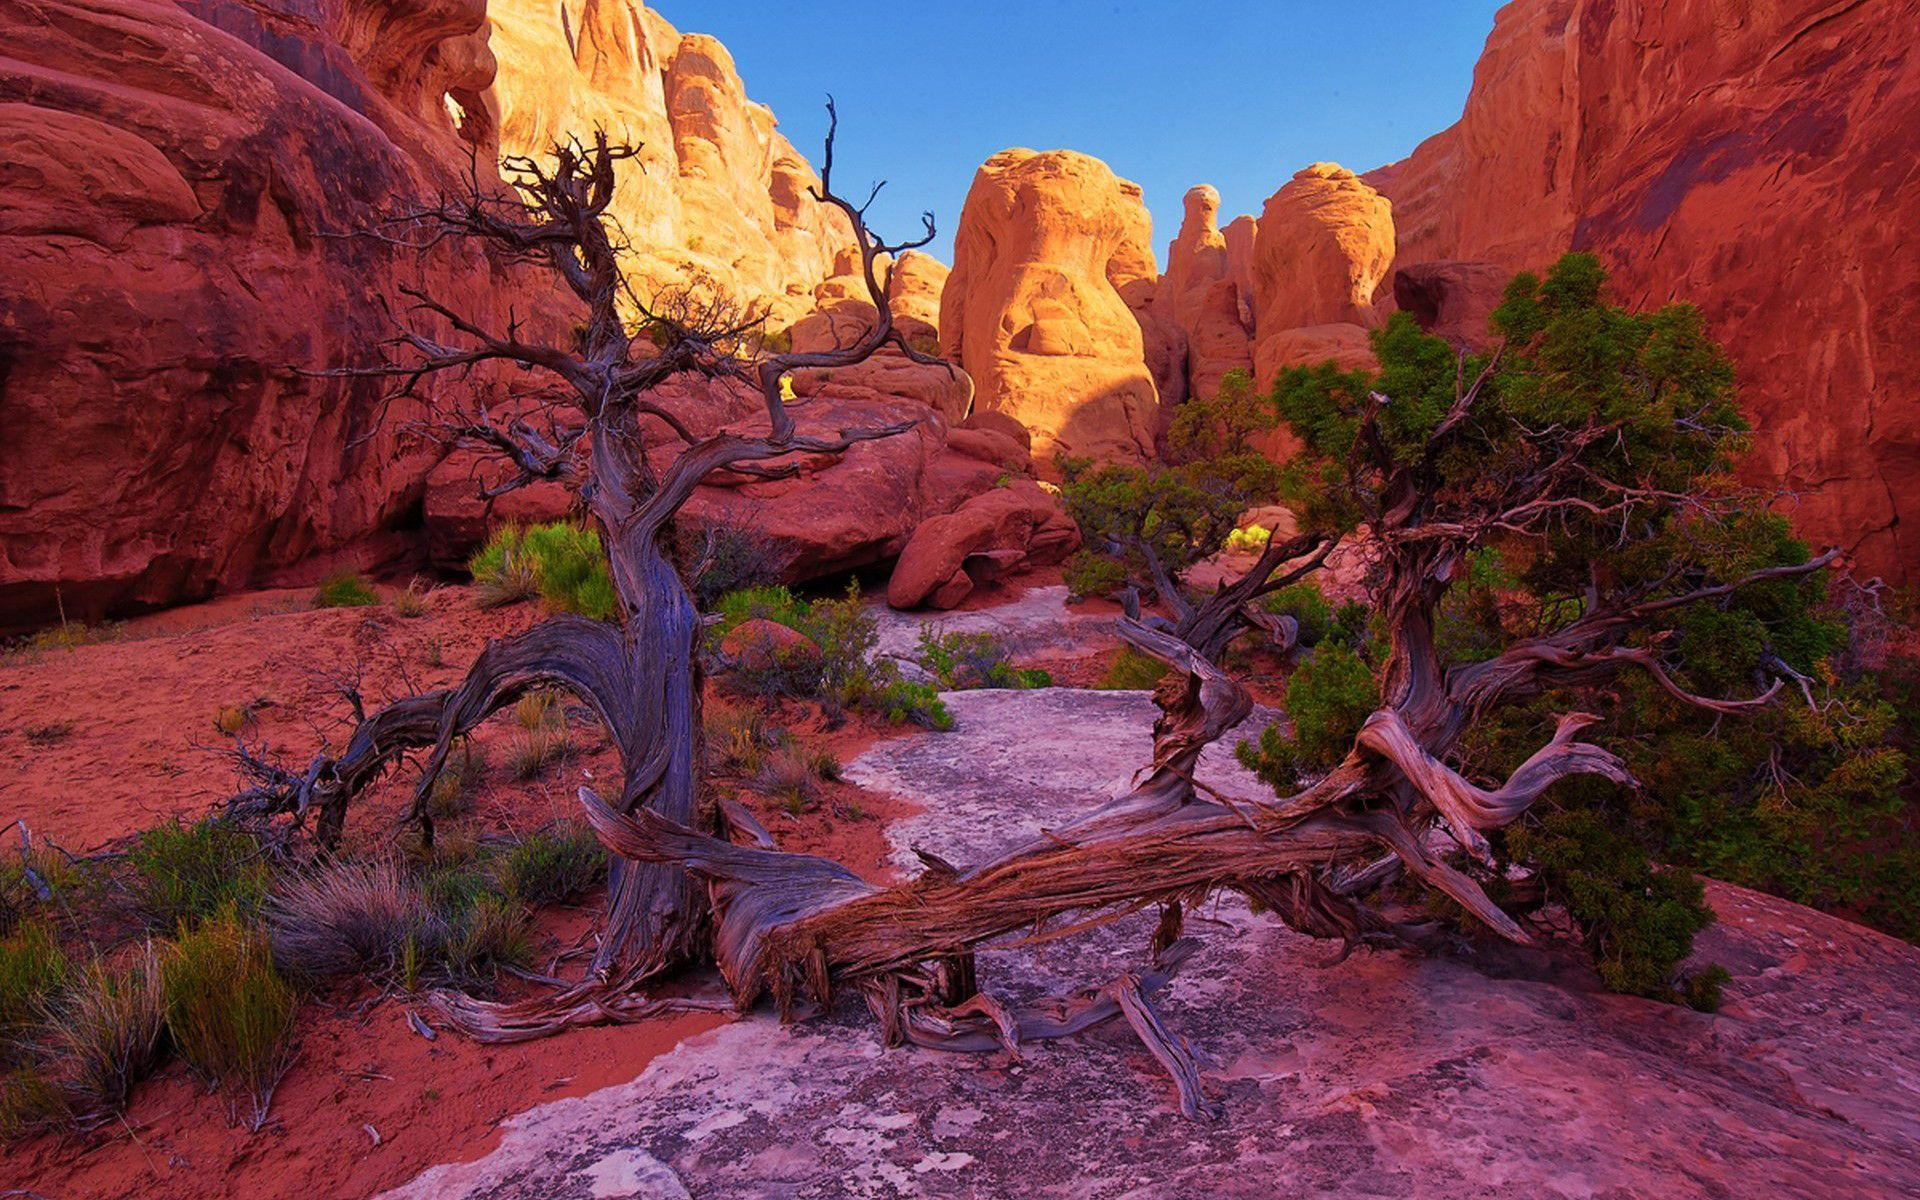 Fiery Furnace Arches National Park